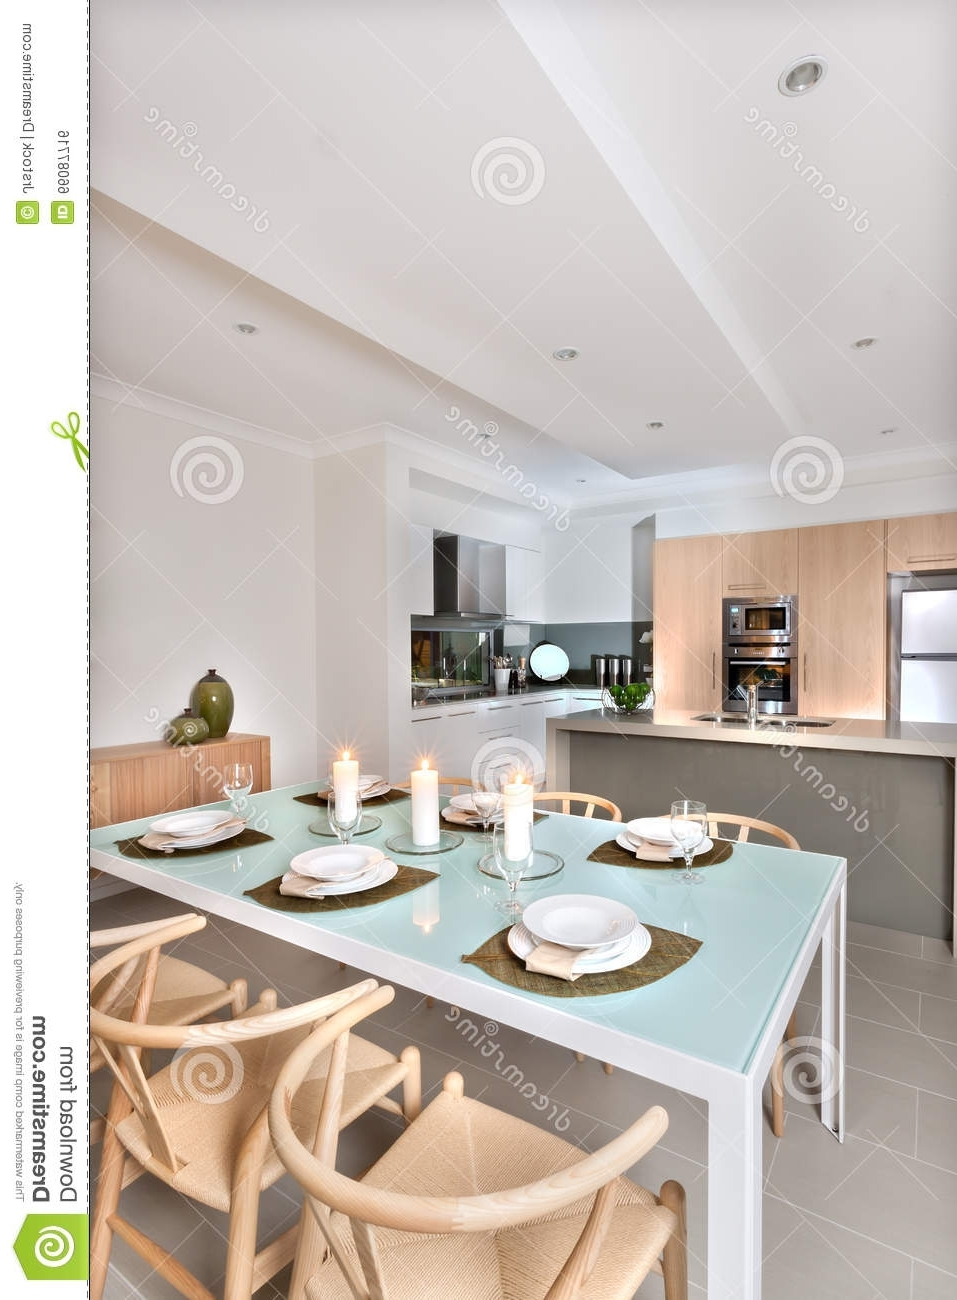 Most Current Modern Dining Room Setup With Candles Flashing In Front Of The Throughout Shiny White Dining Tables (View 12 of 25)